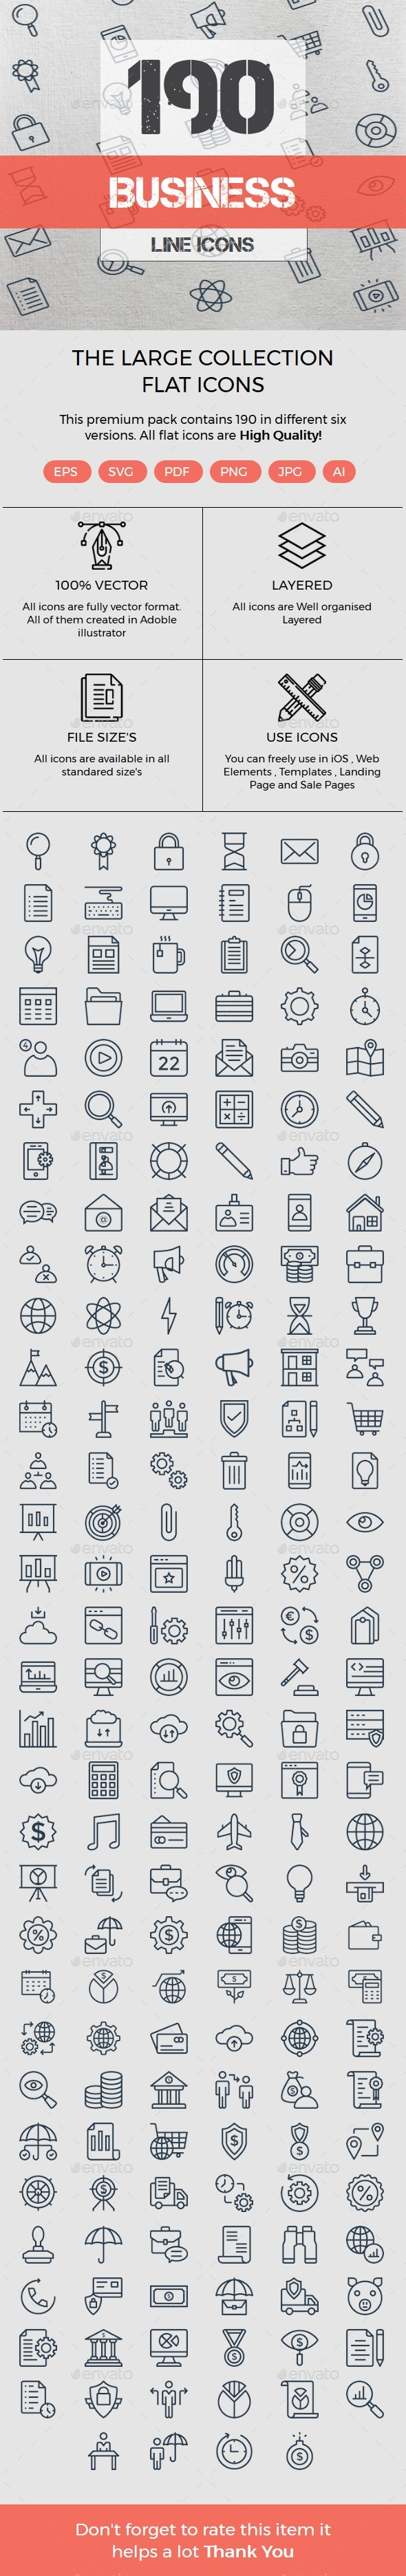 190 Business Line icons - Business Icons